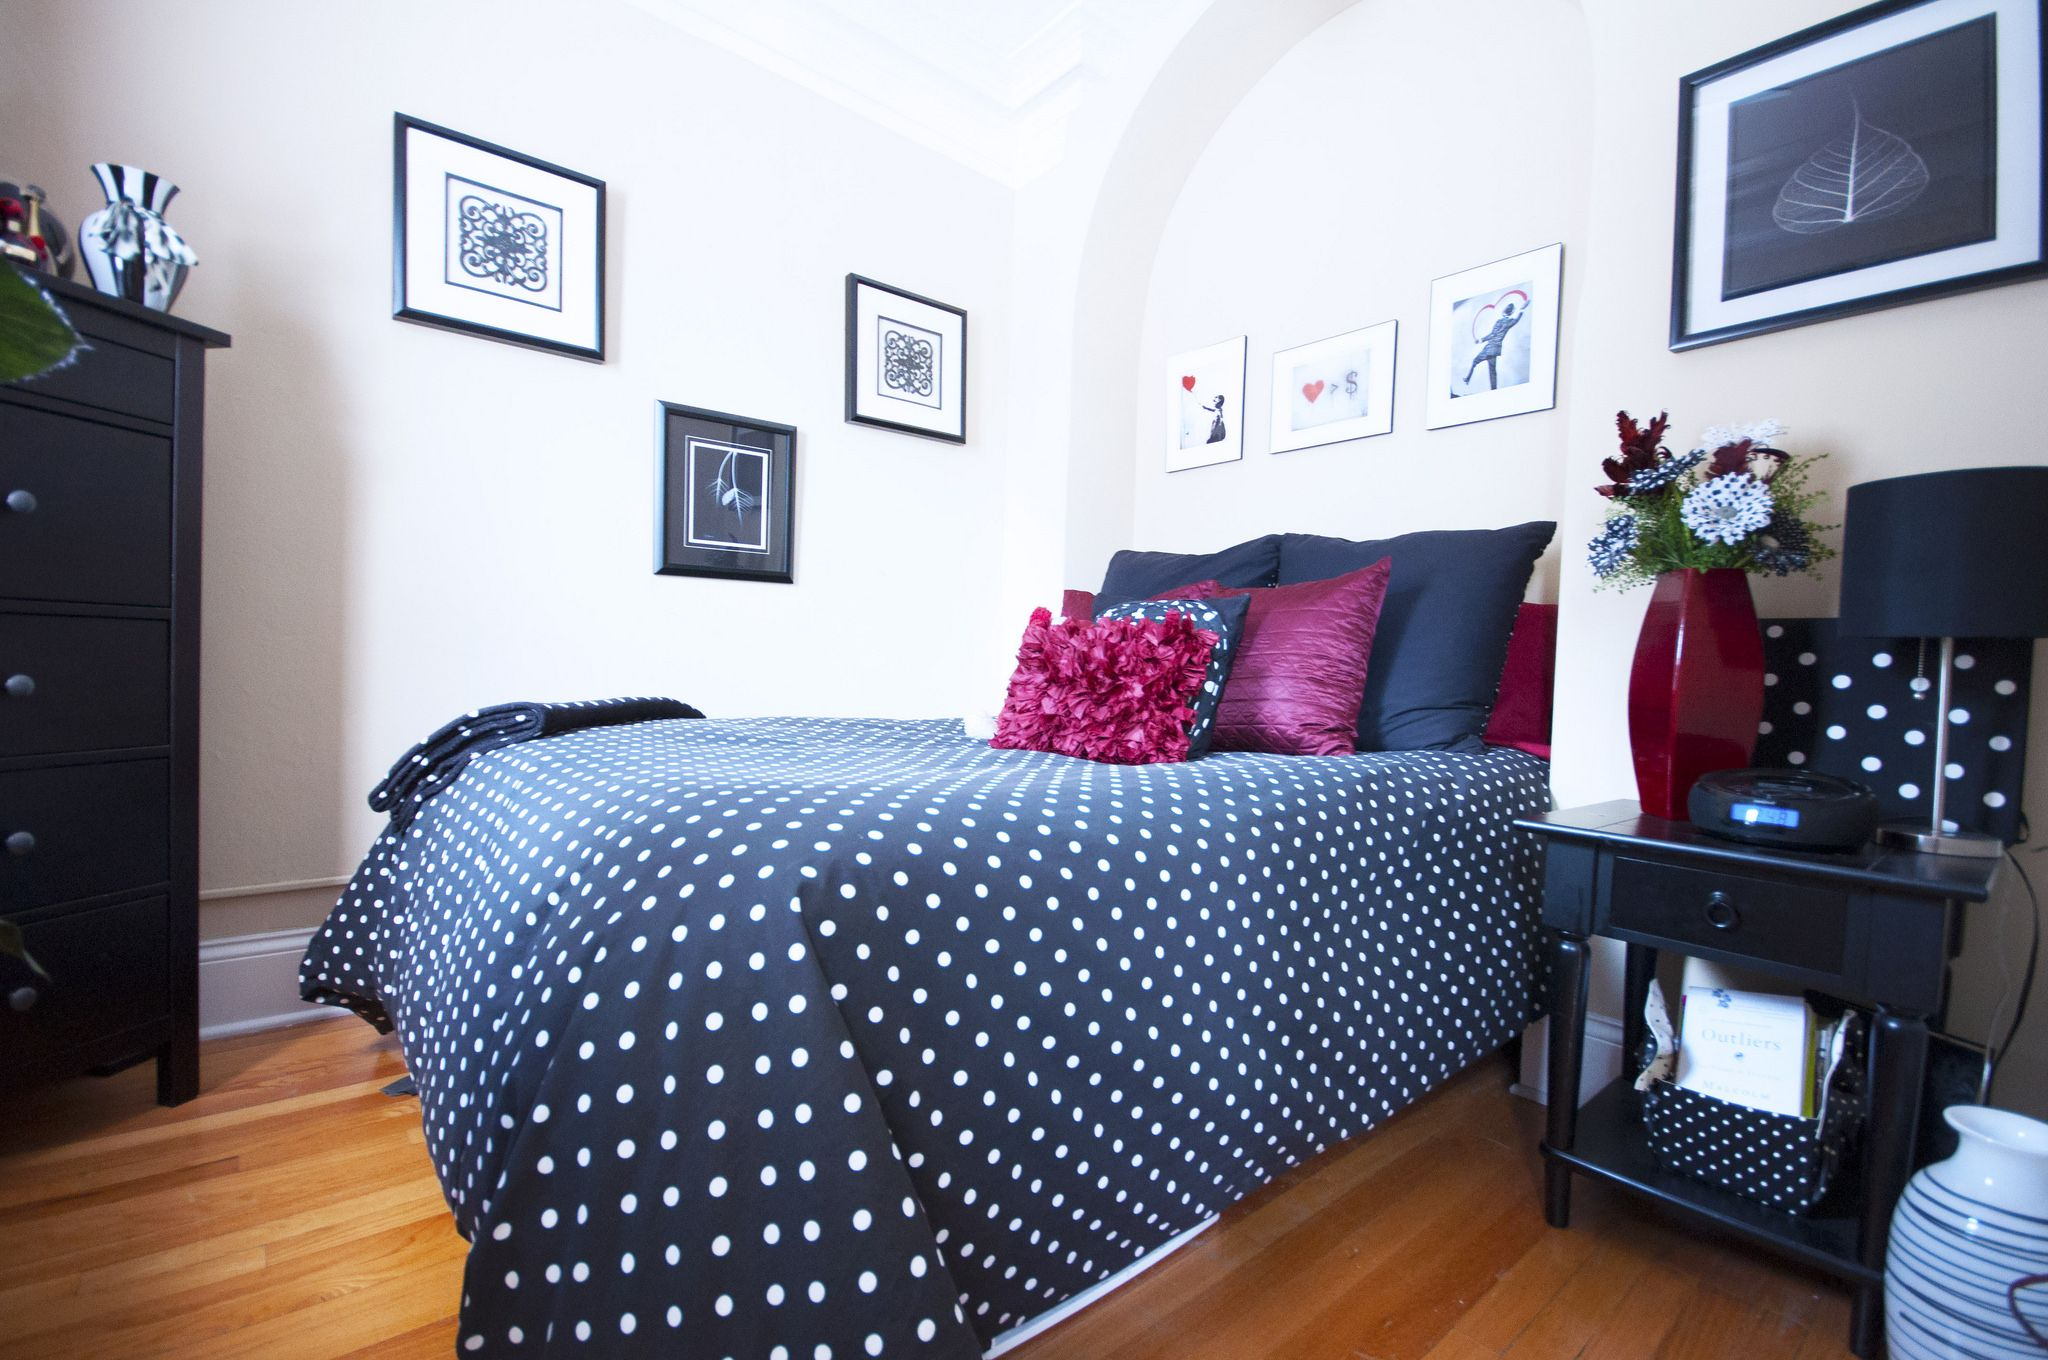 Cute and colorful decorating ideas for your bedroom